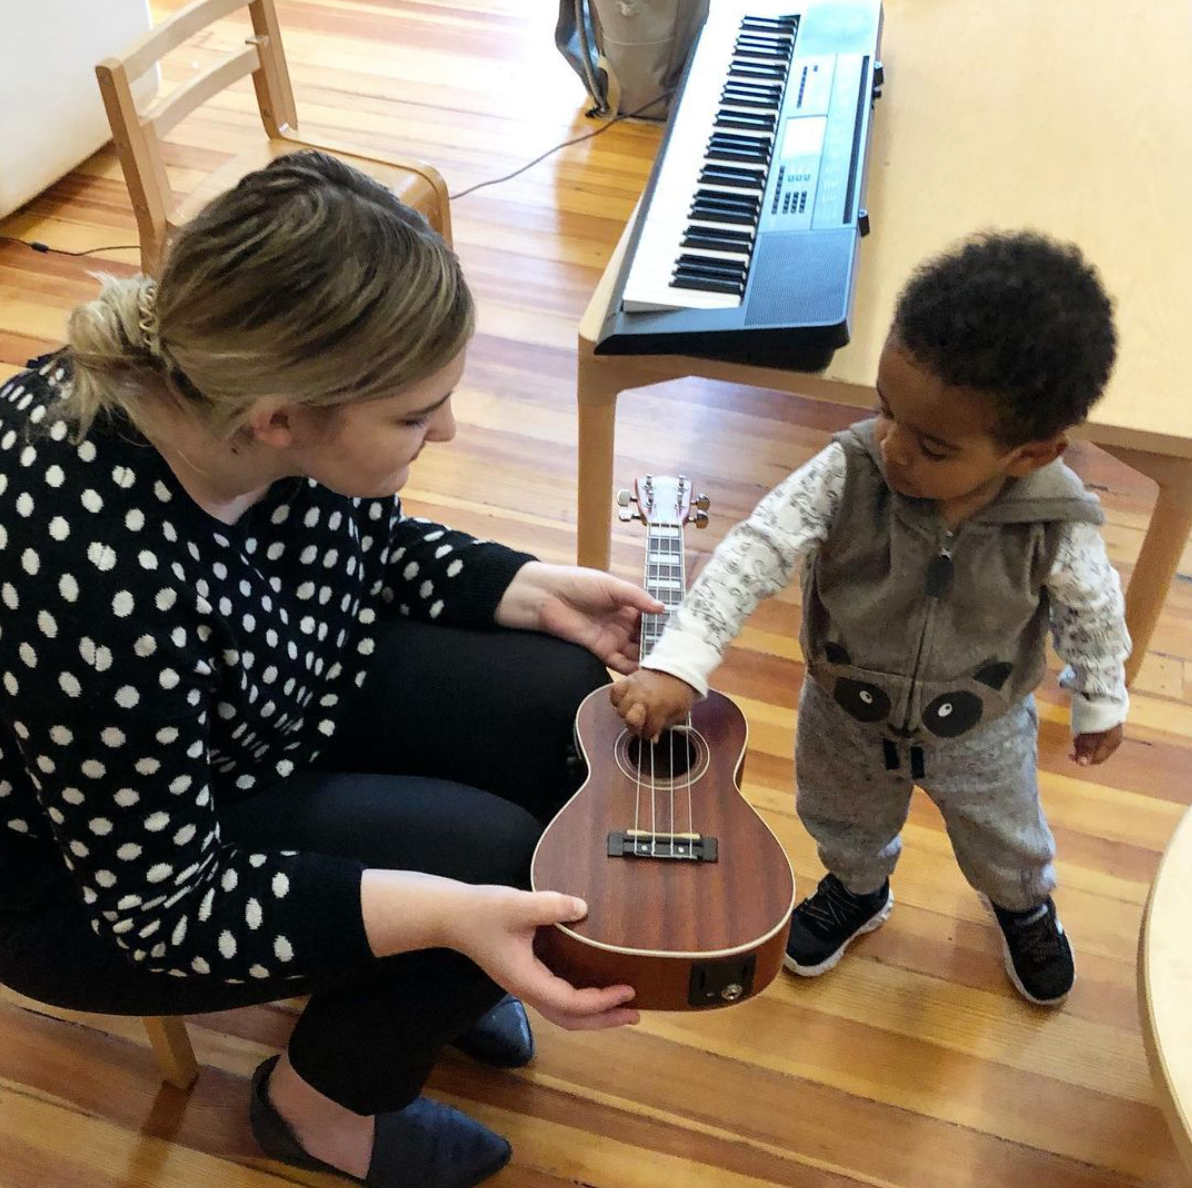 A music teacher holds a ukulele for a young child to play with